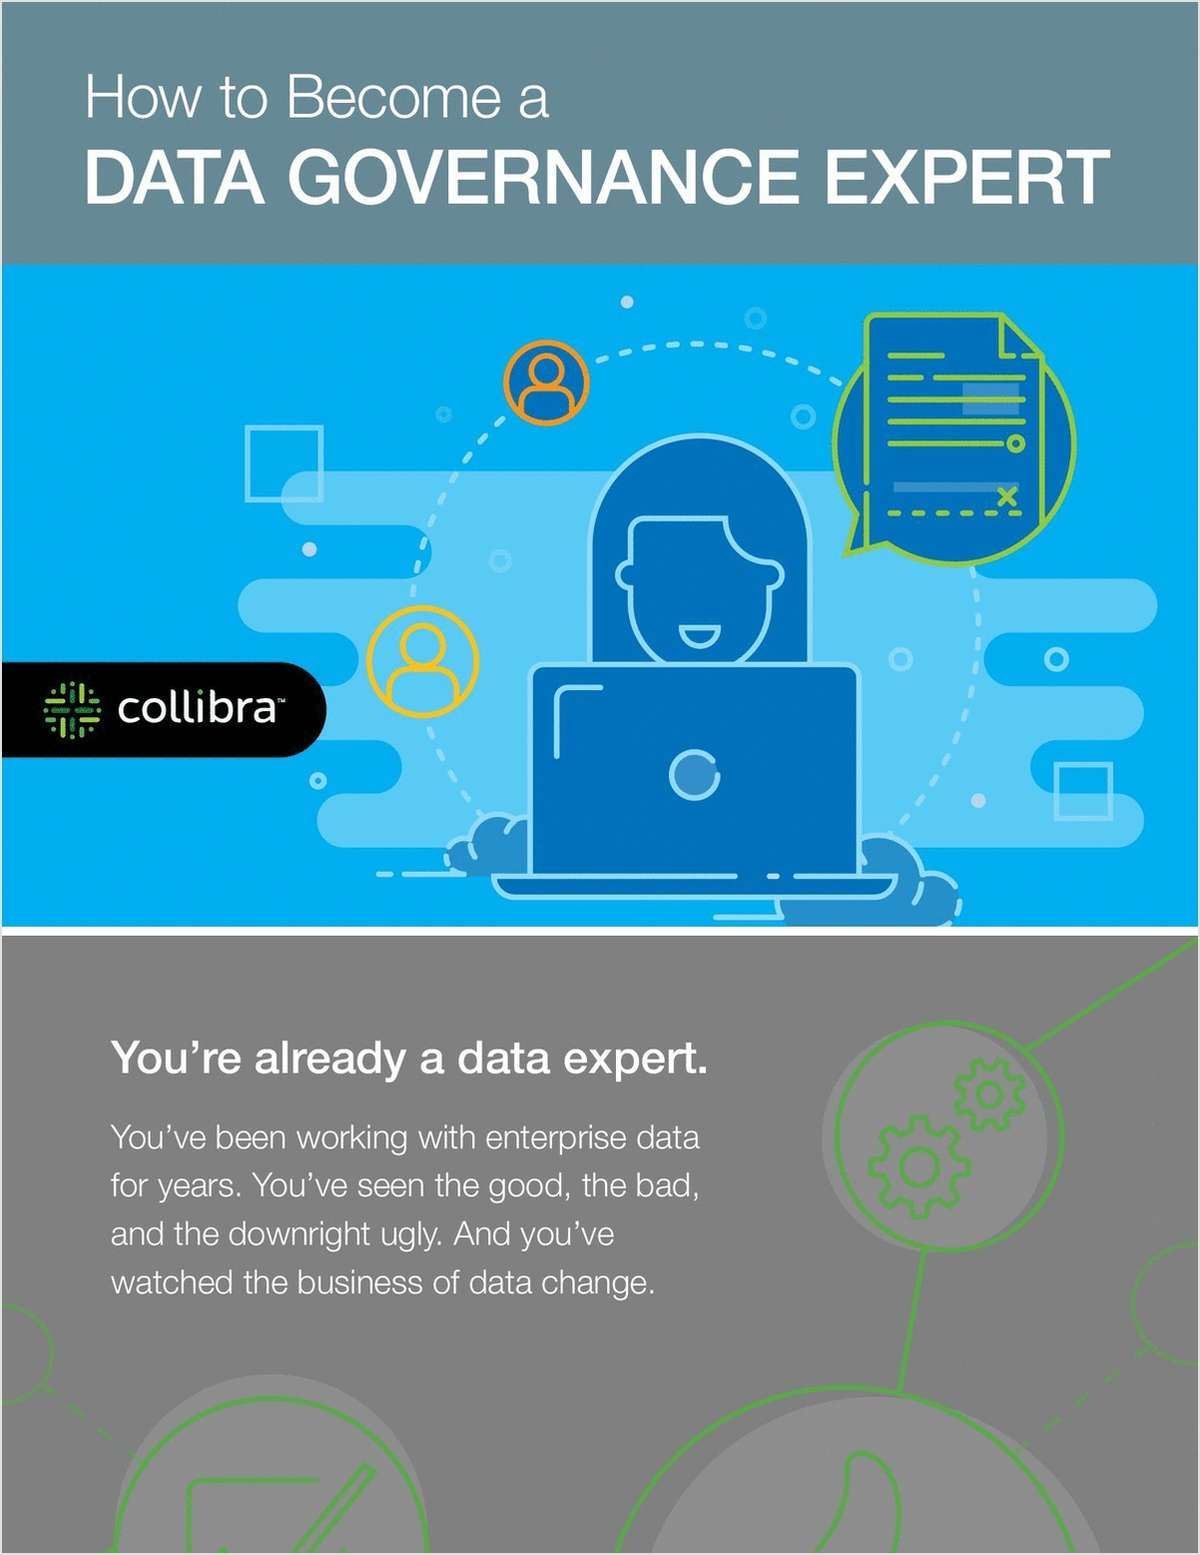 How to Become a Data Governance Expert